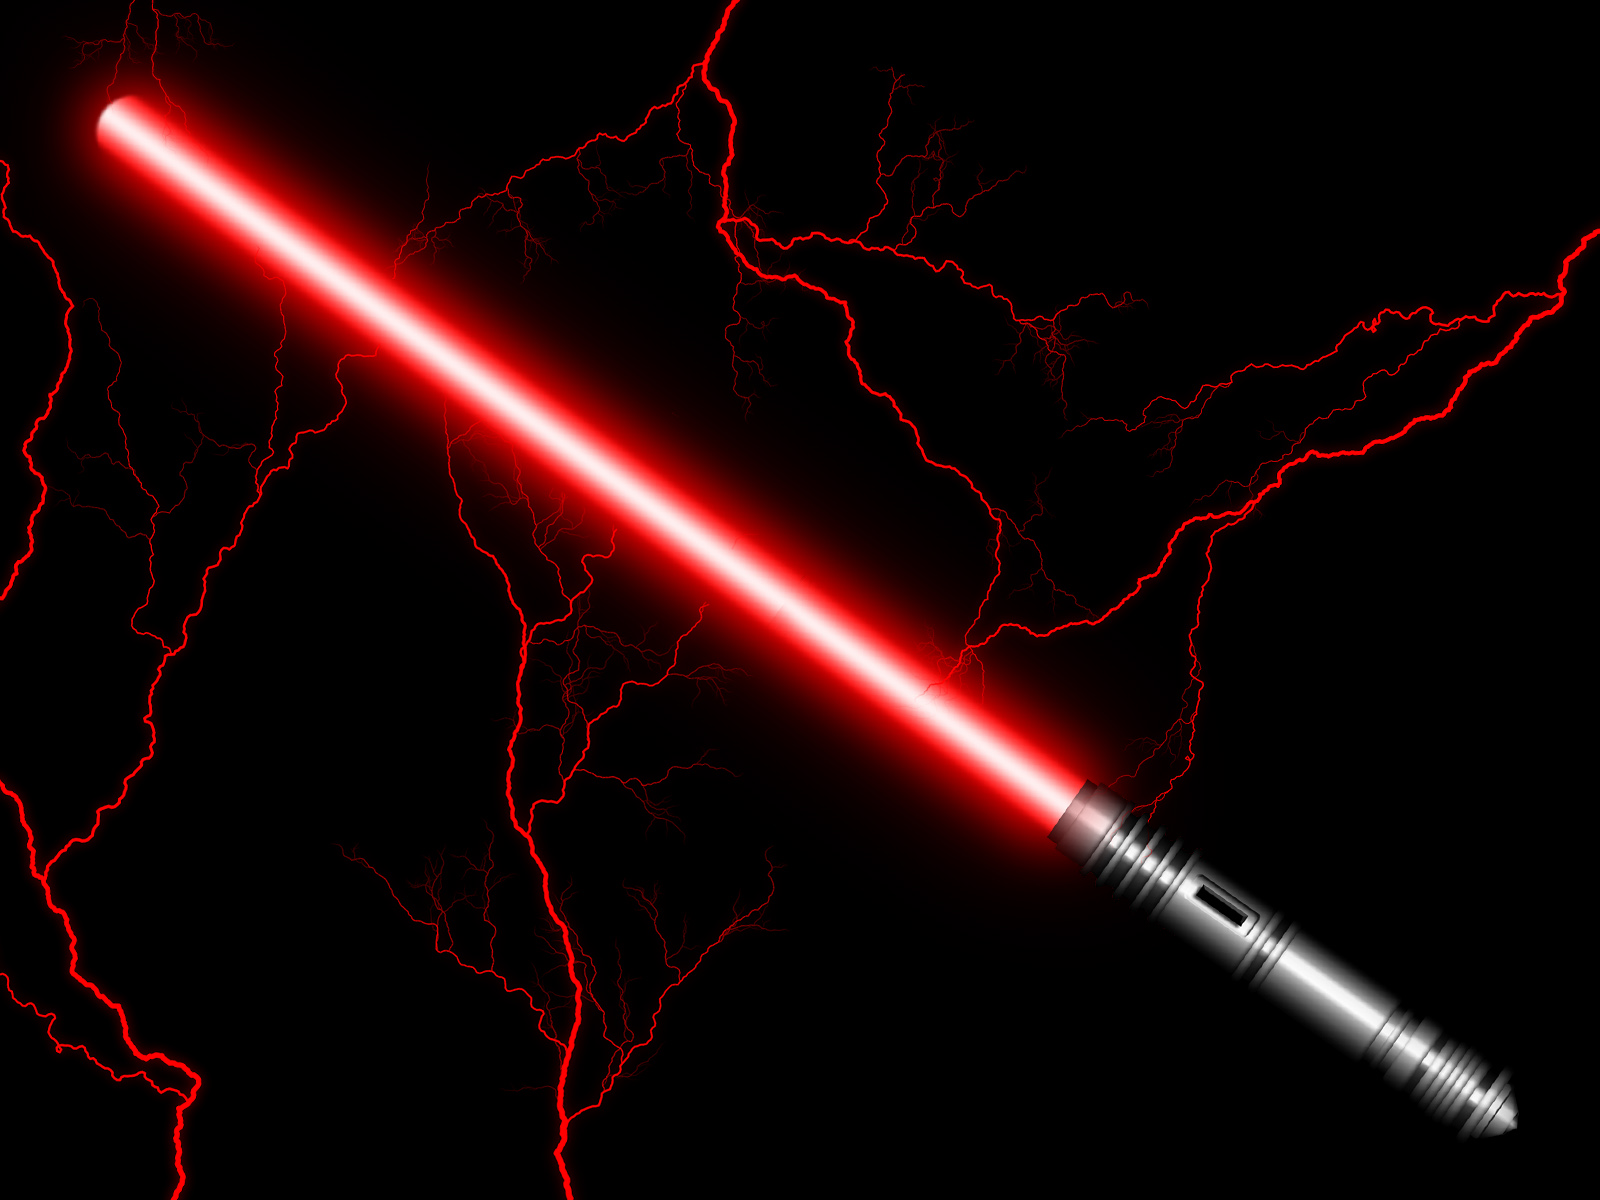 Wallpaper #108 Lightsaber | Red and Black Wallpapers